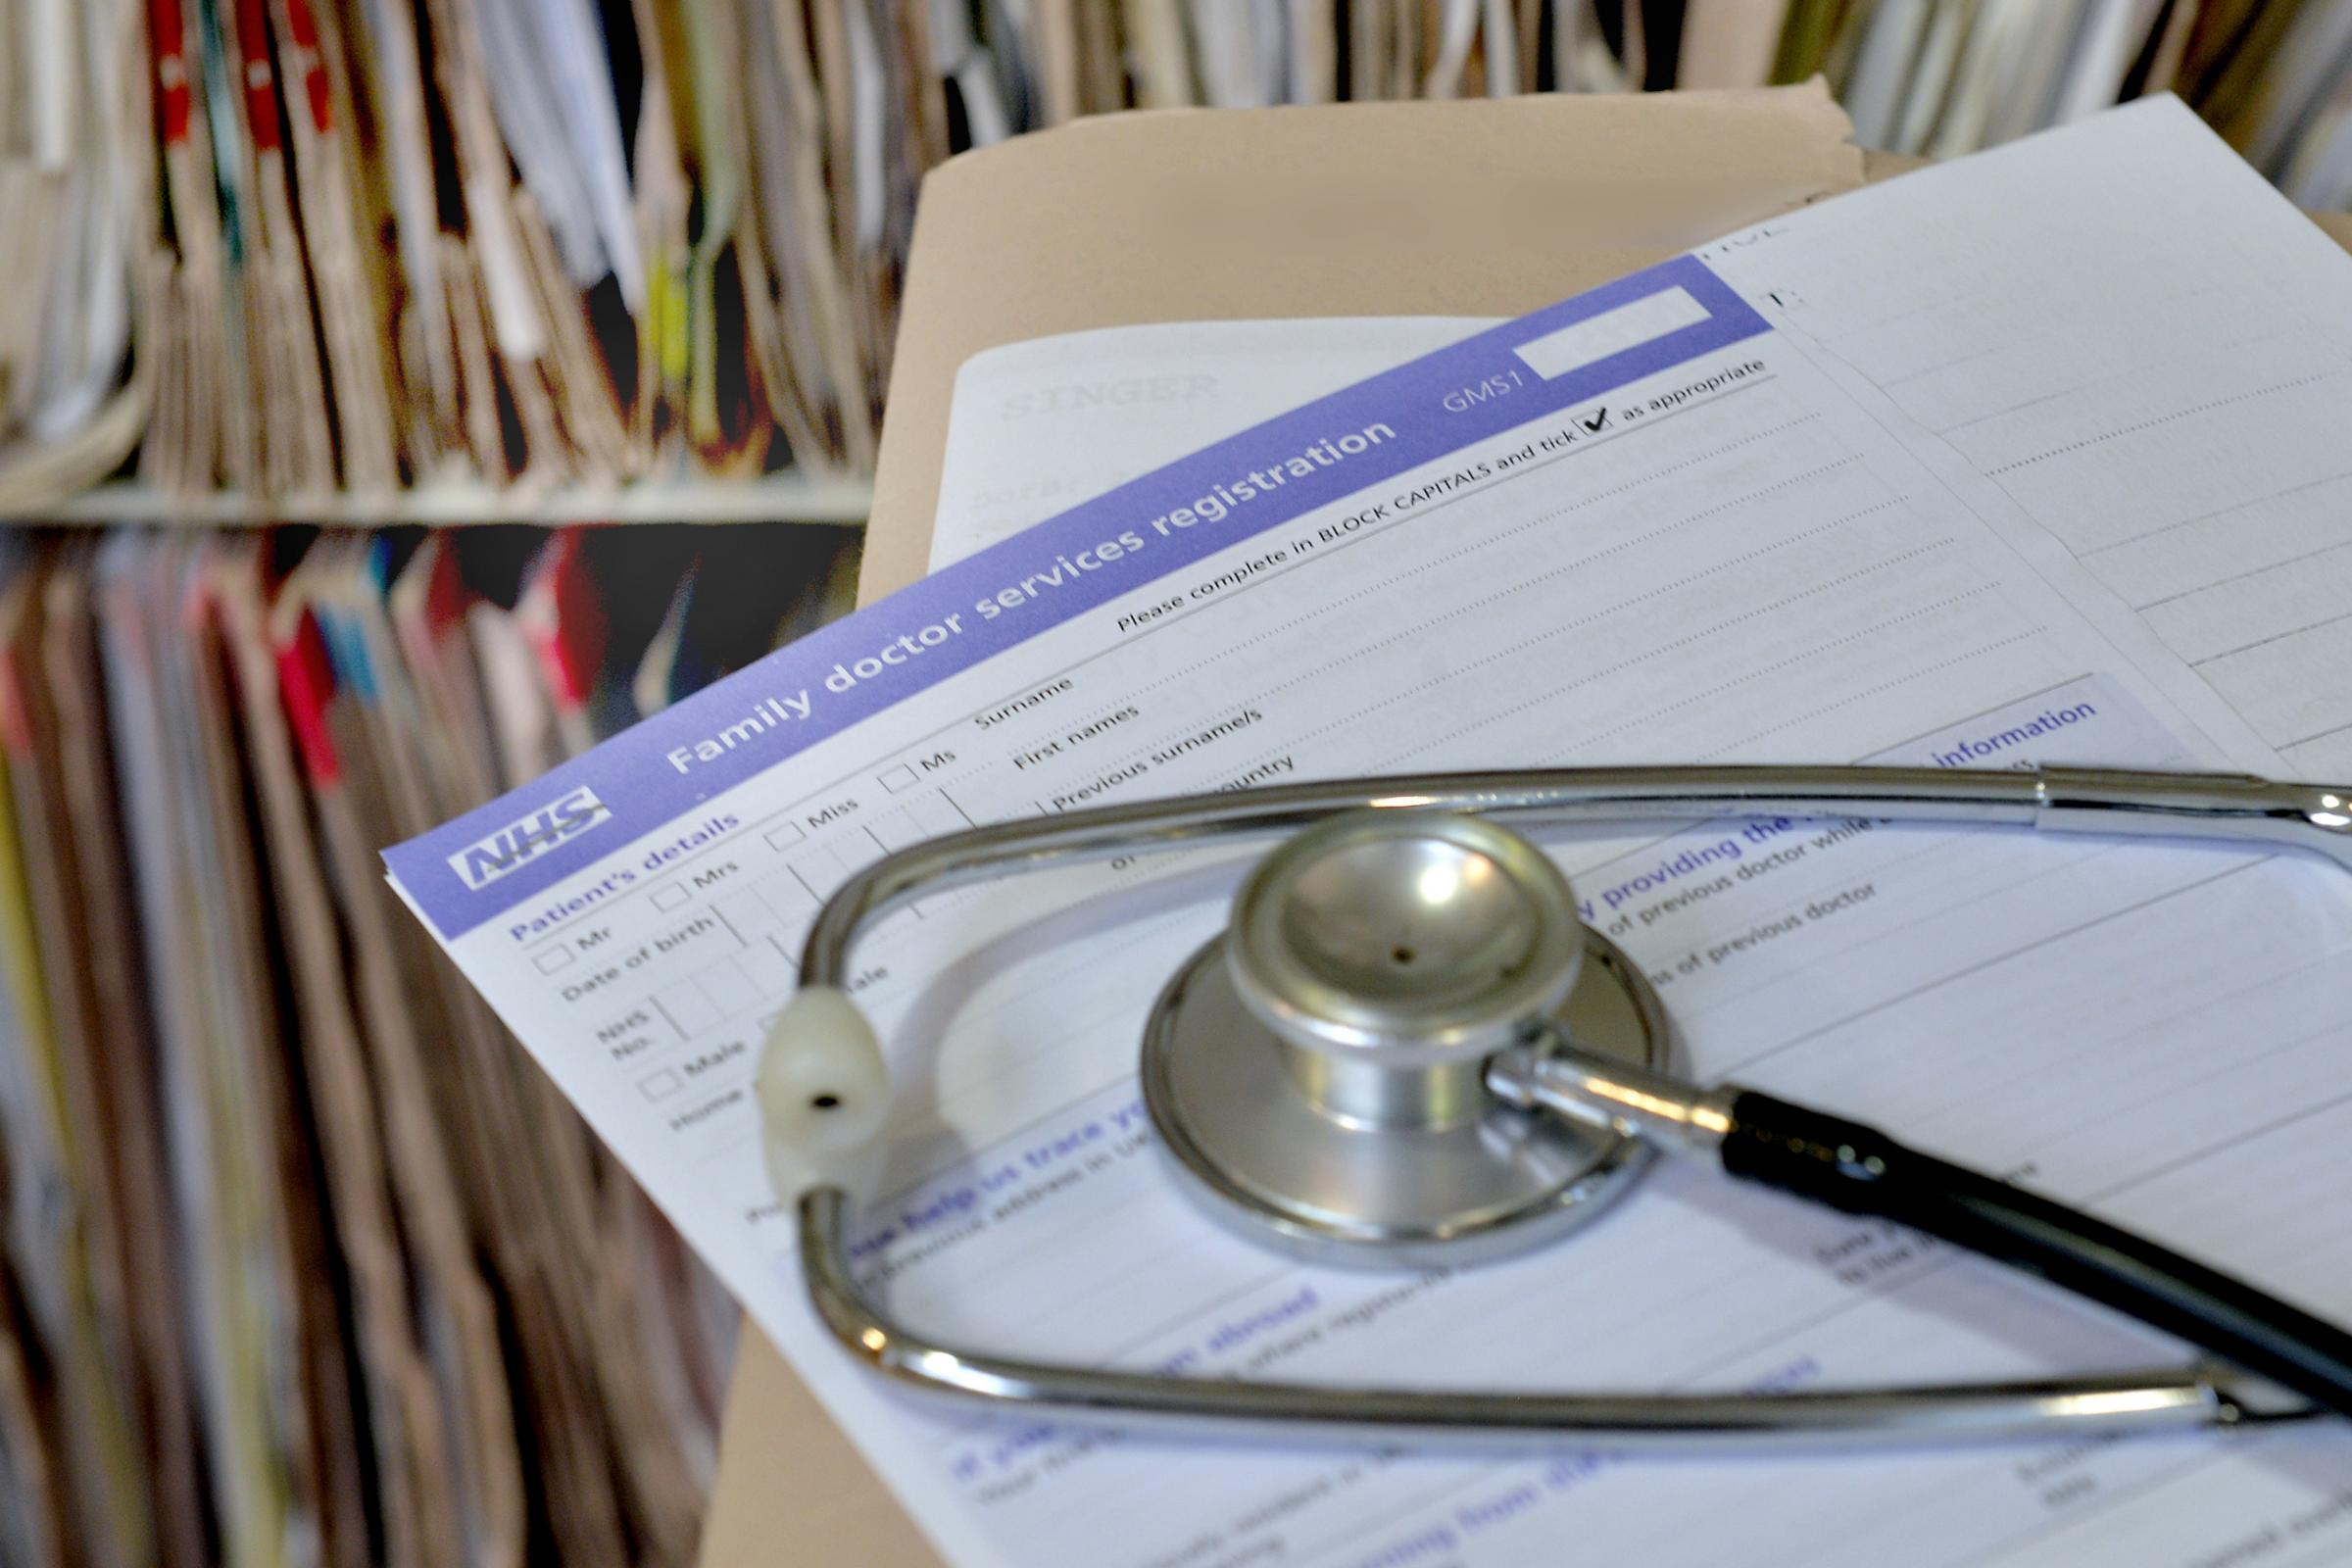 A registration form and a stethoscope